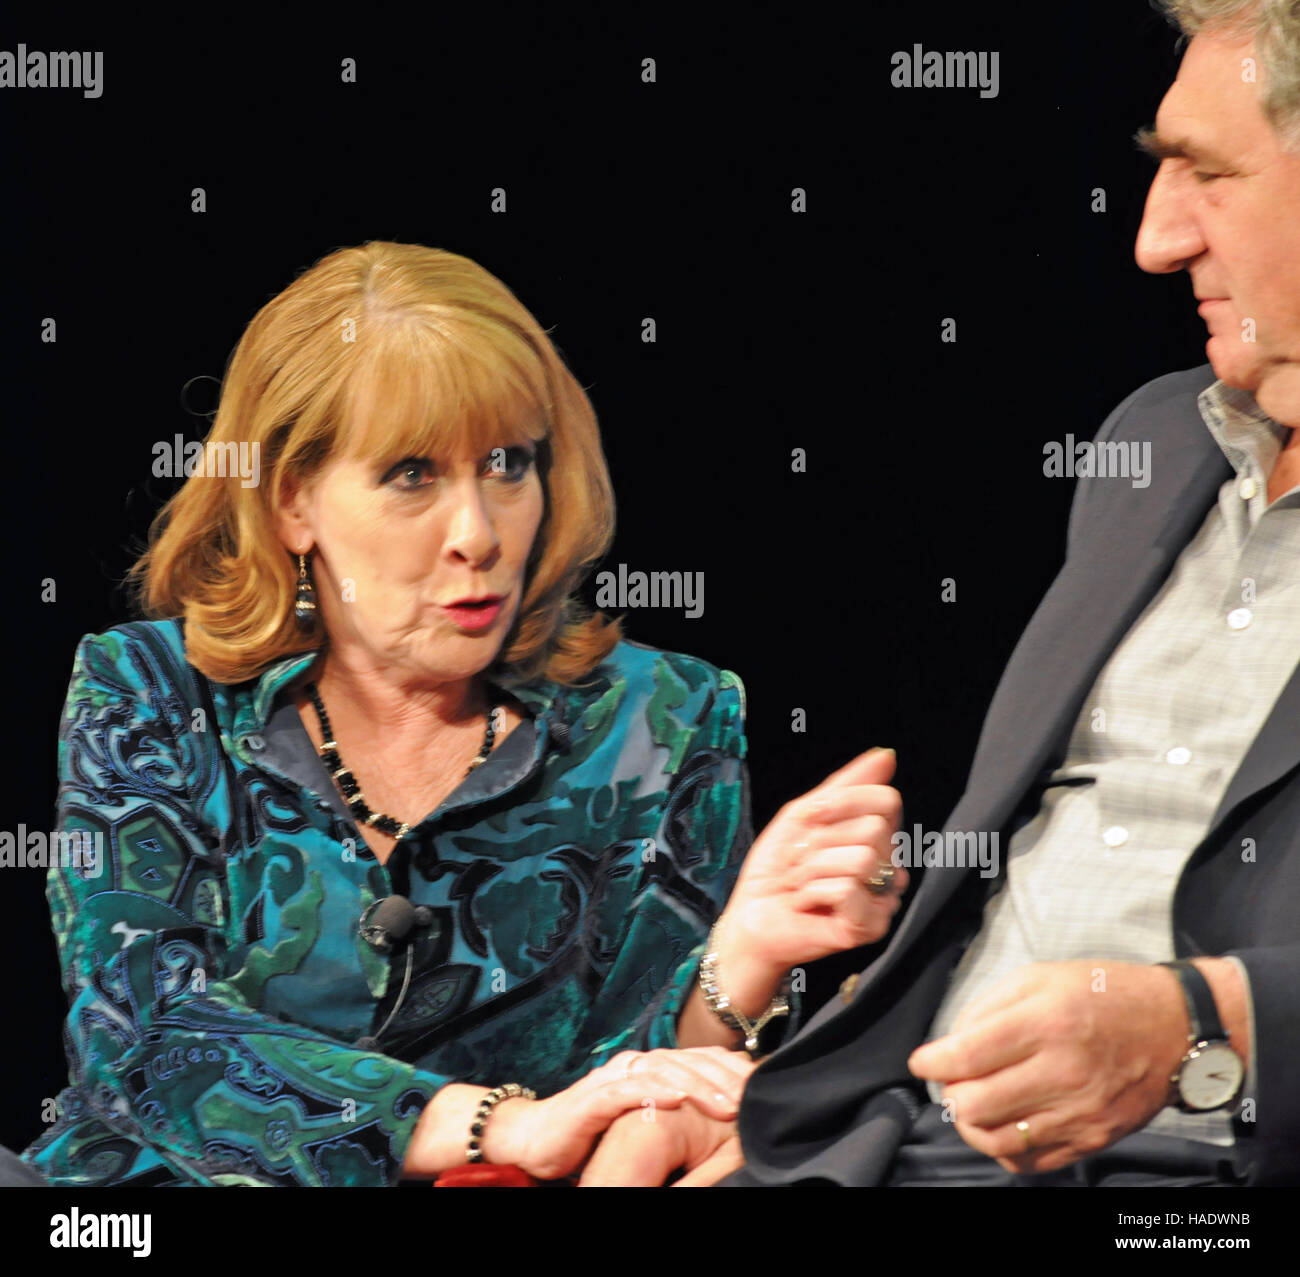 NY, NY. December 8 2015.  Phyllis Logan and Jim Carter at the 'Downtown Abbey' PBS panel. © Veronica - Stock Image